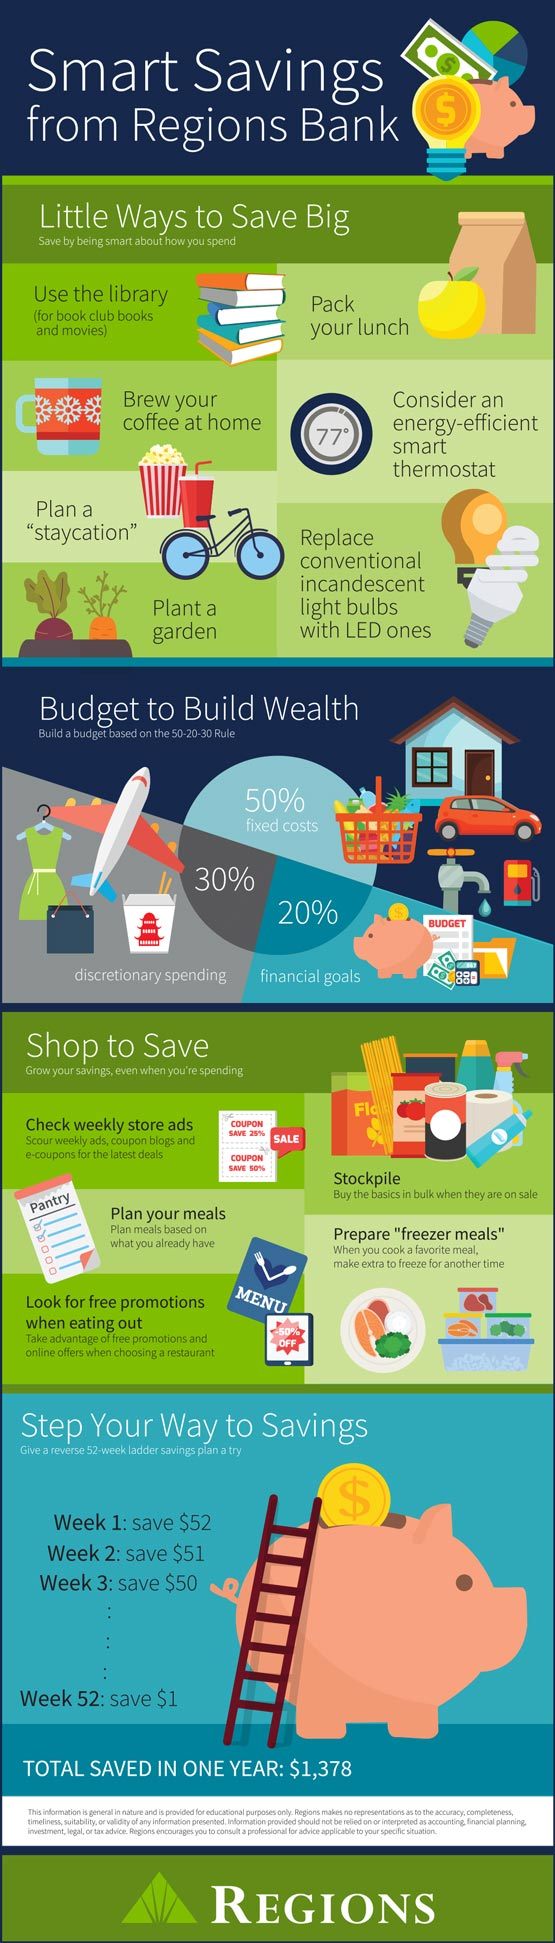 How to Save Money: 26 Smart Savings Tips  Regions